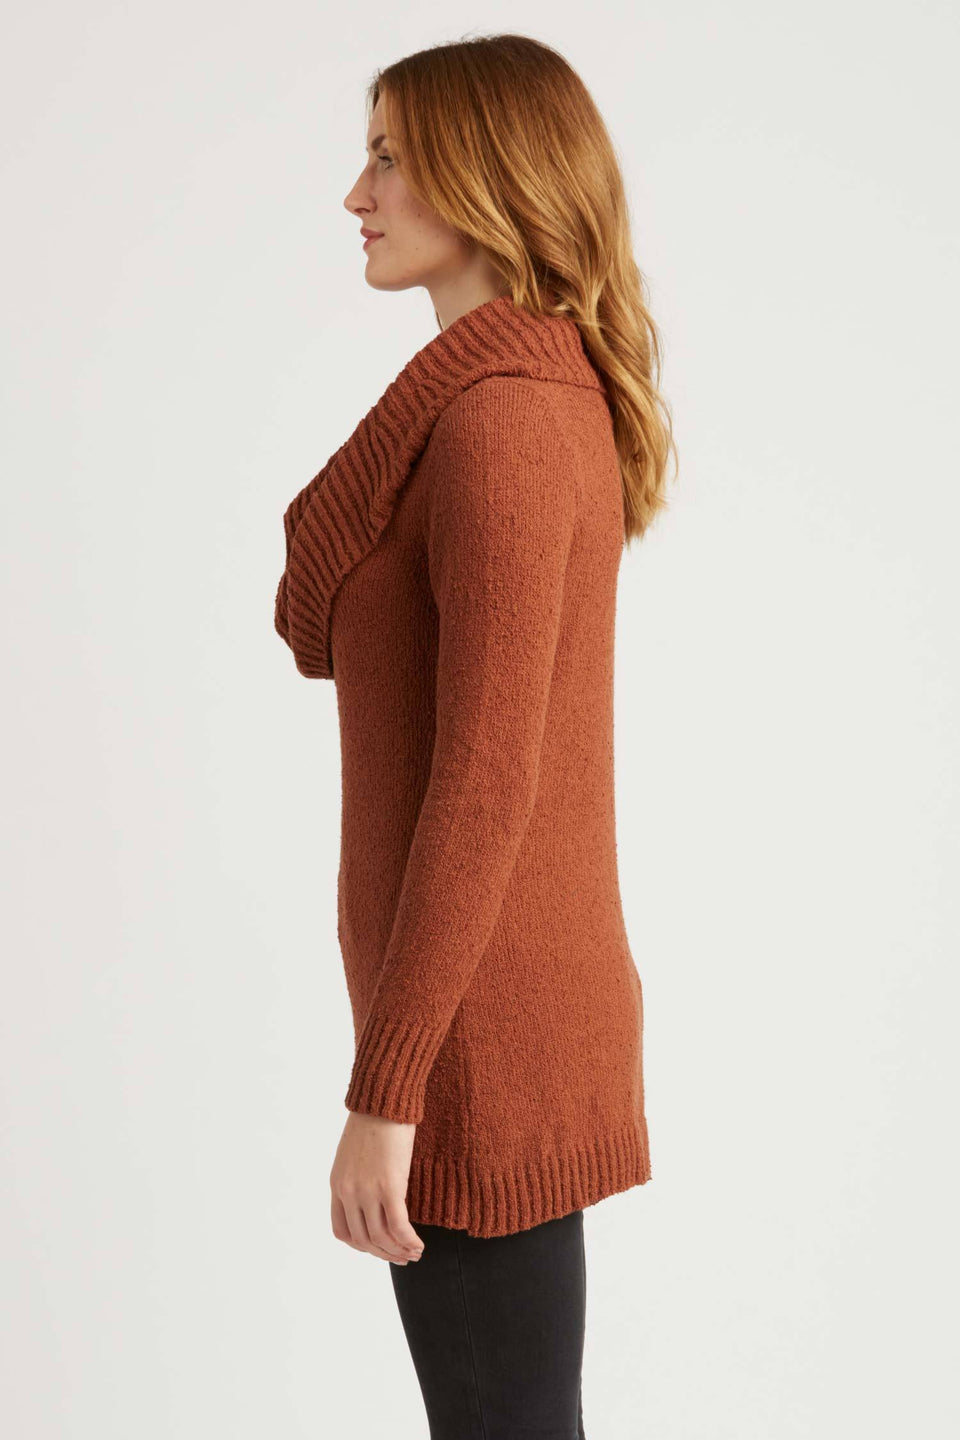 Bardot Pullover Sweater in Cognac